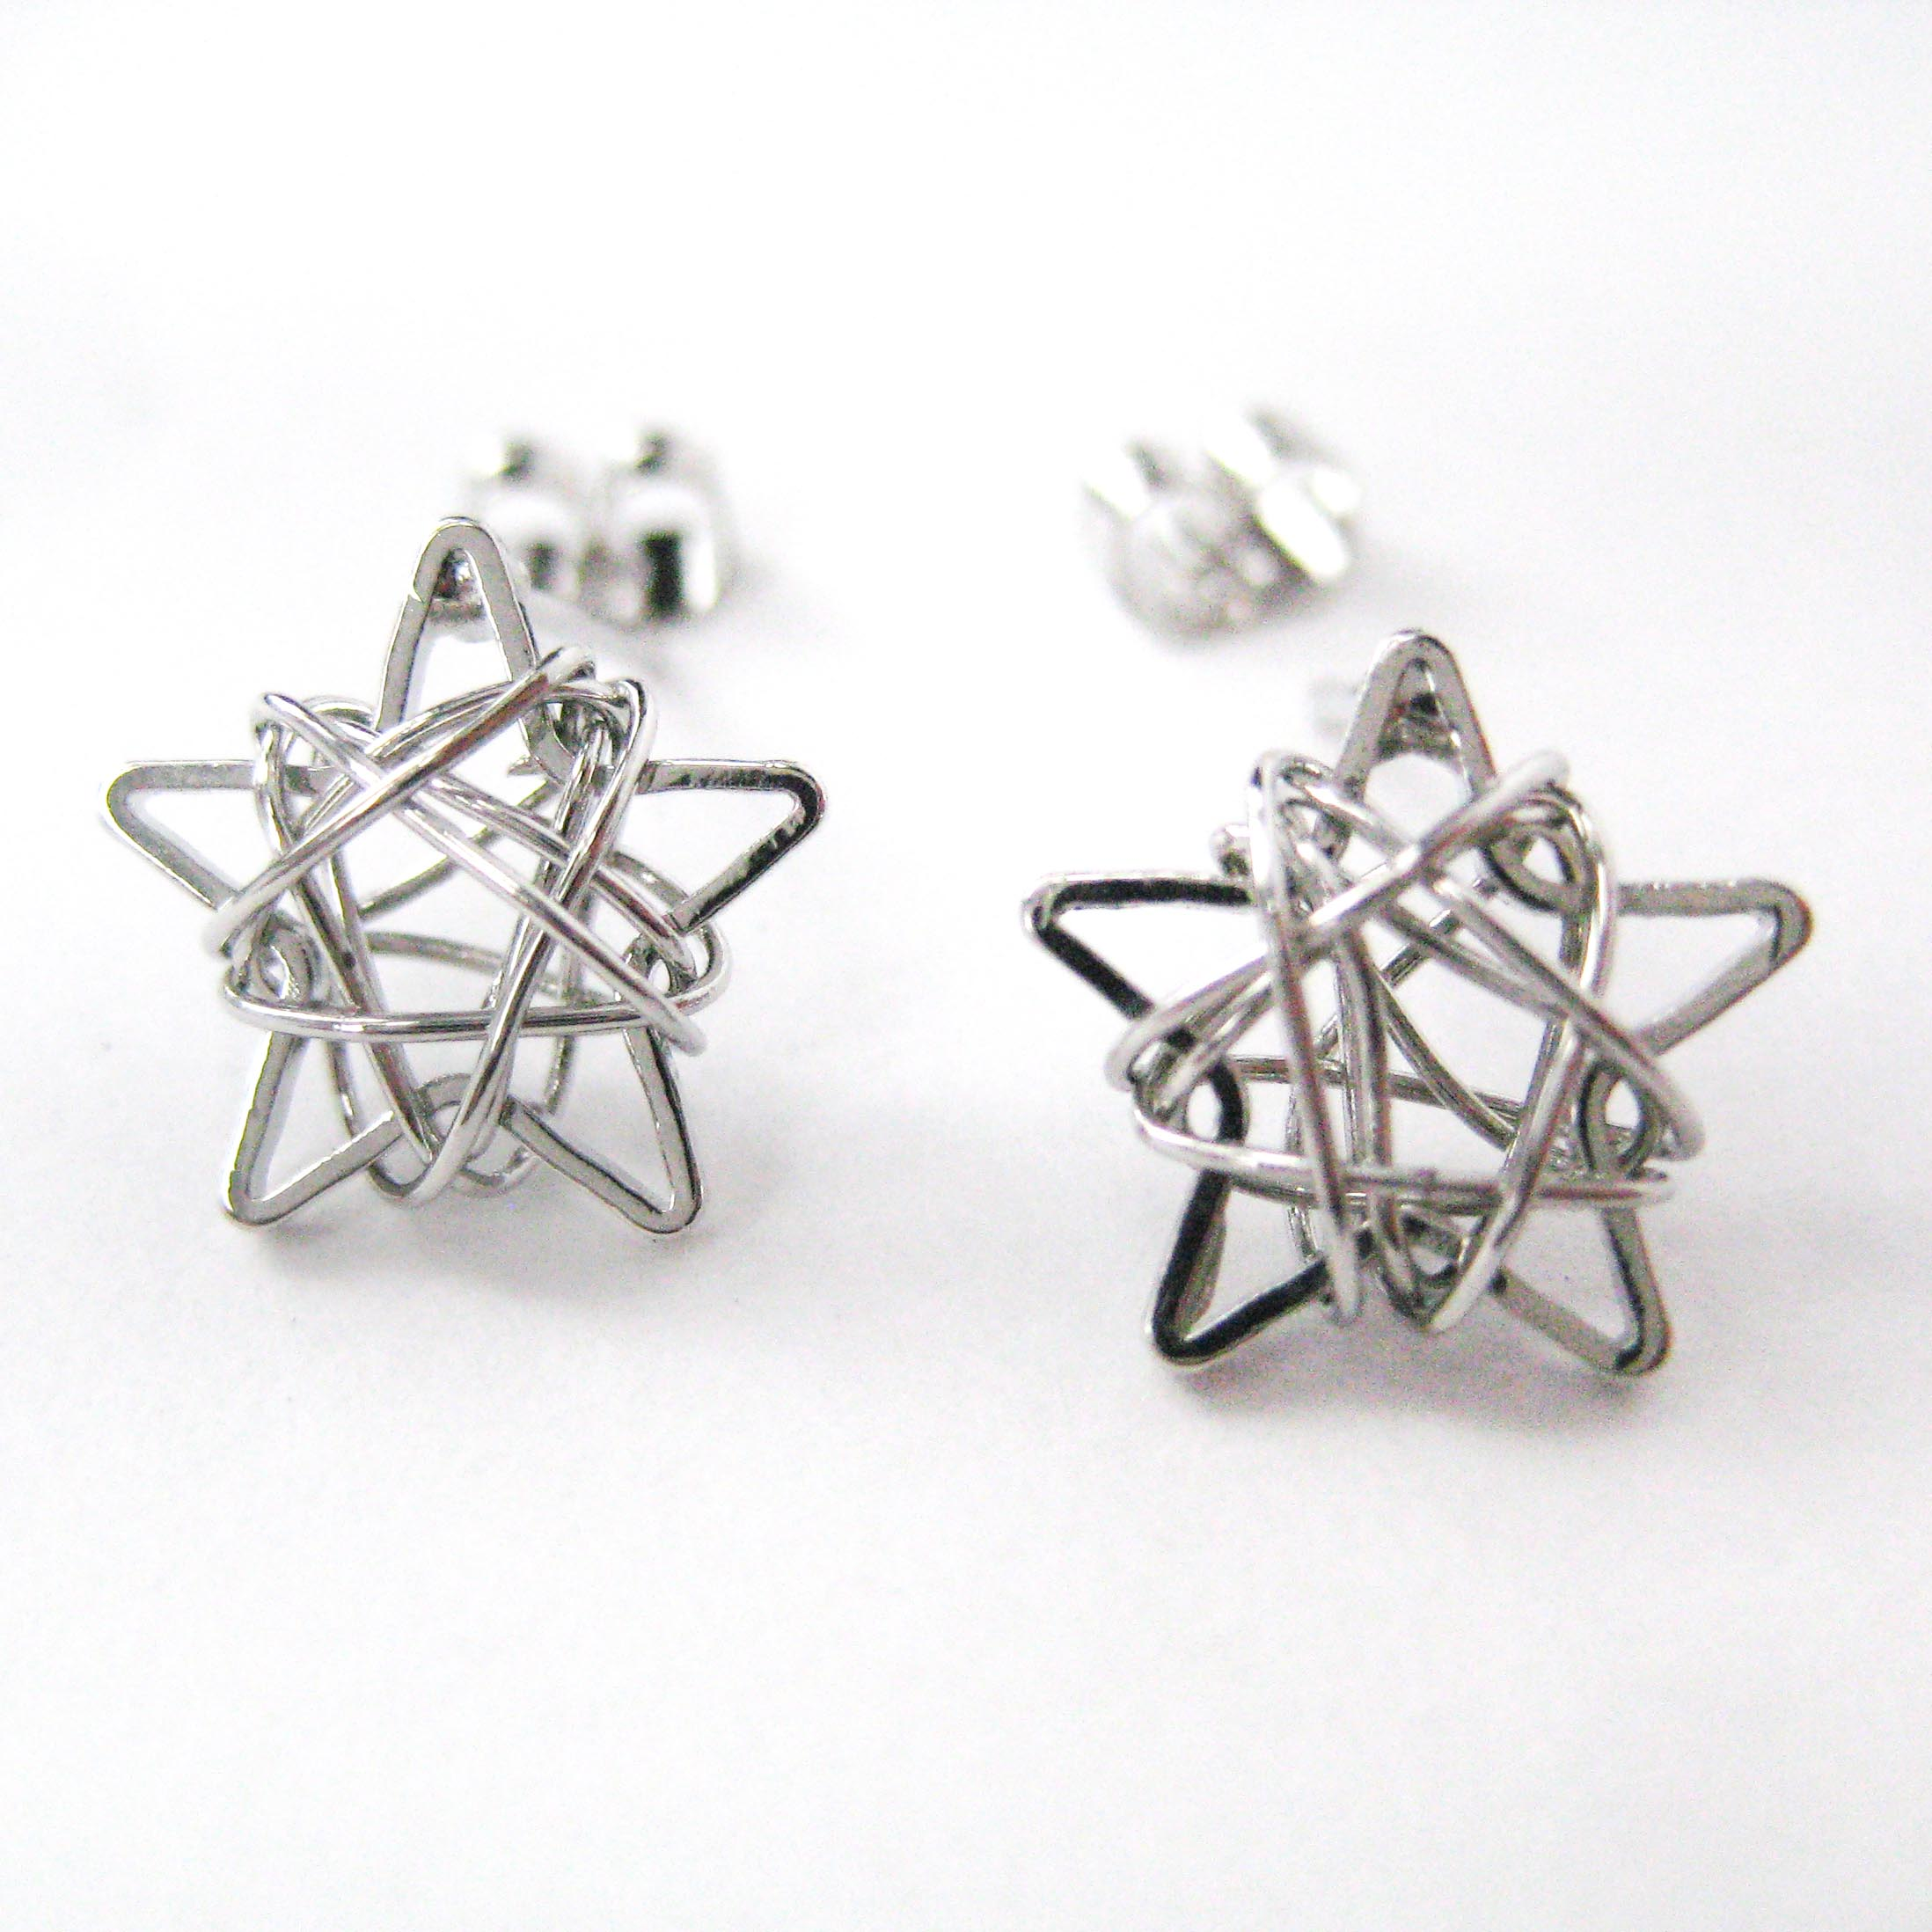 jewellery earrings compass foss carlamundy campfirecompass campfire stud product